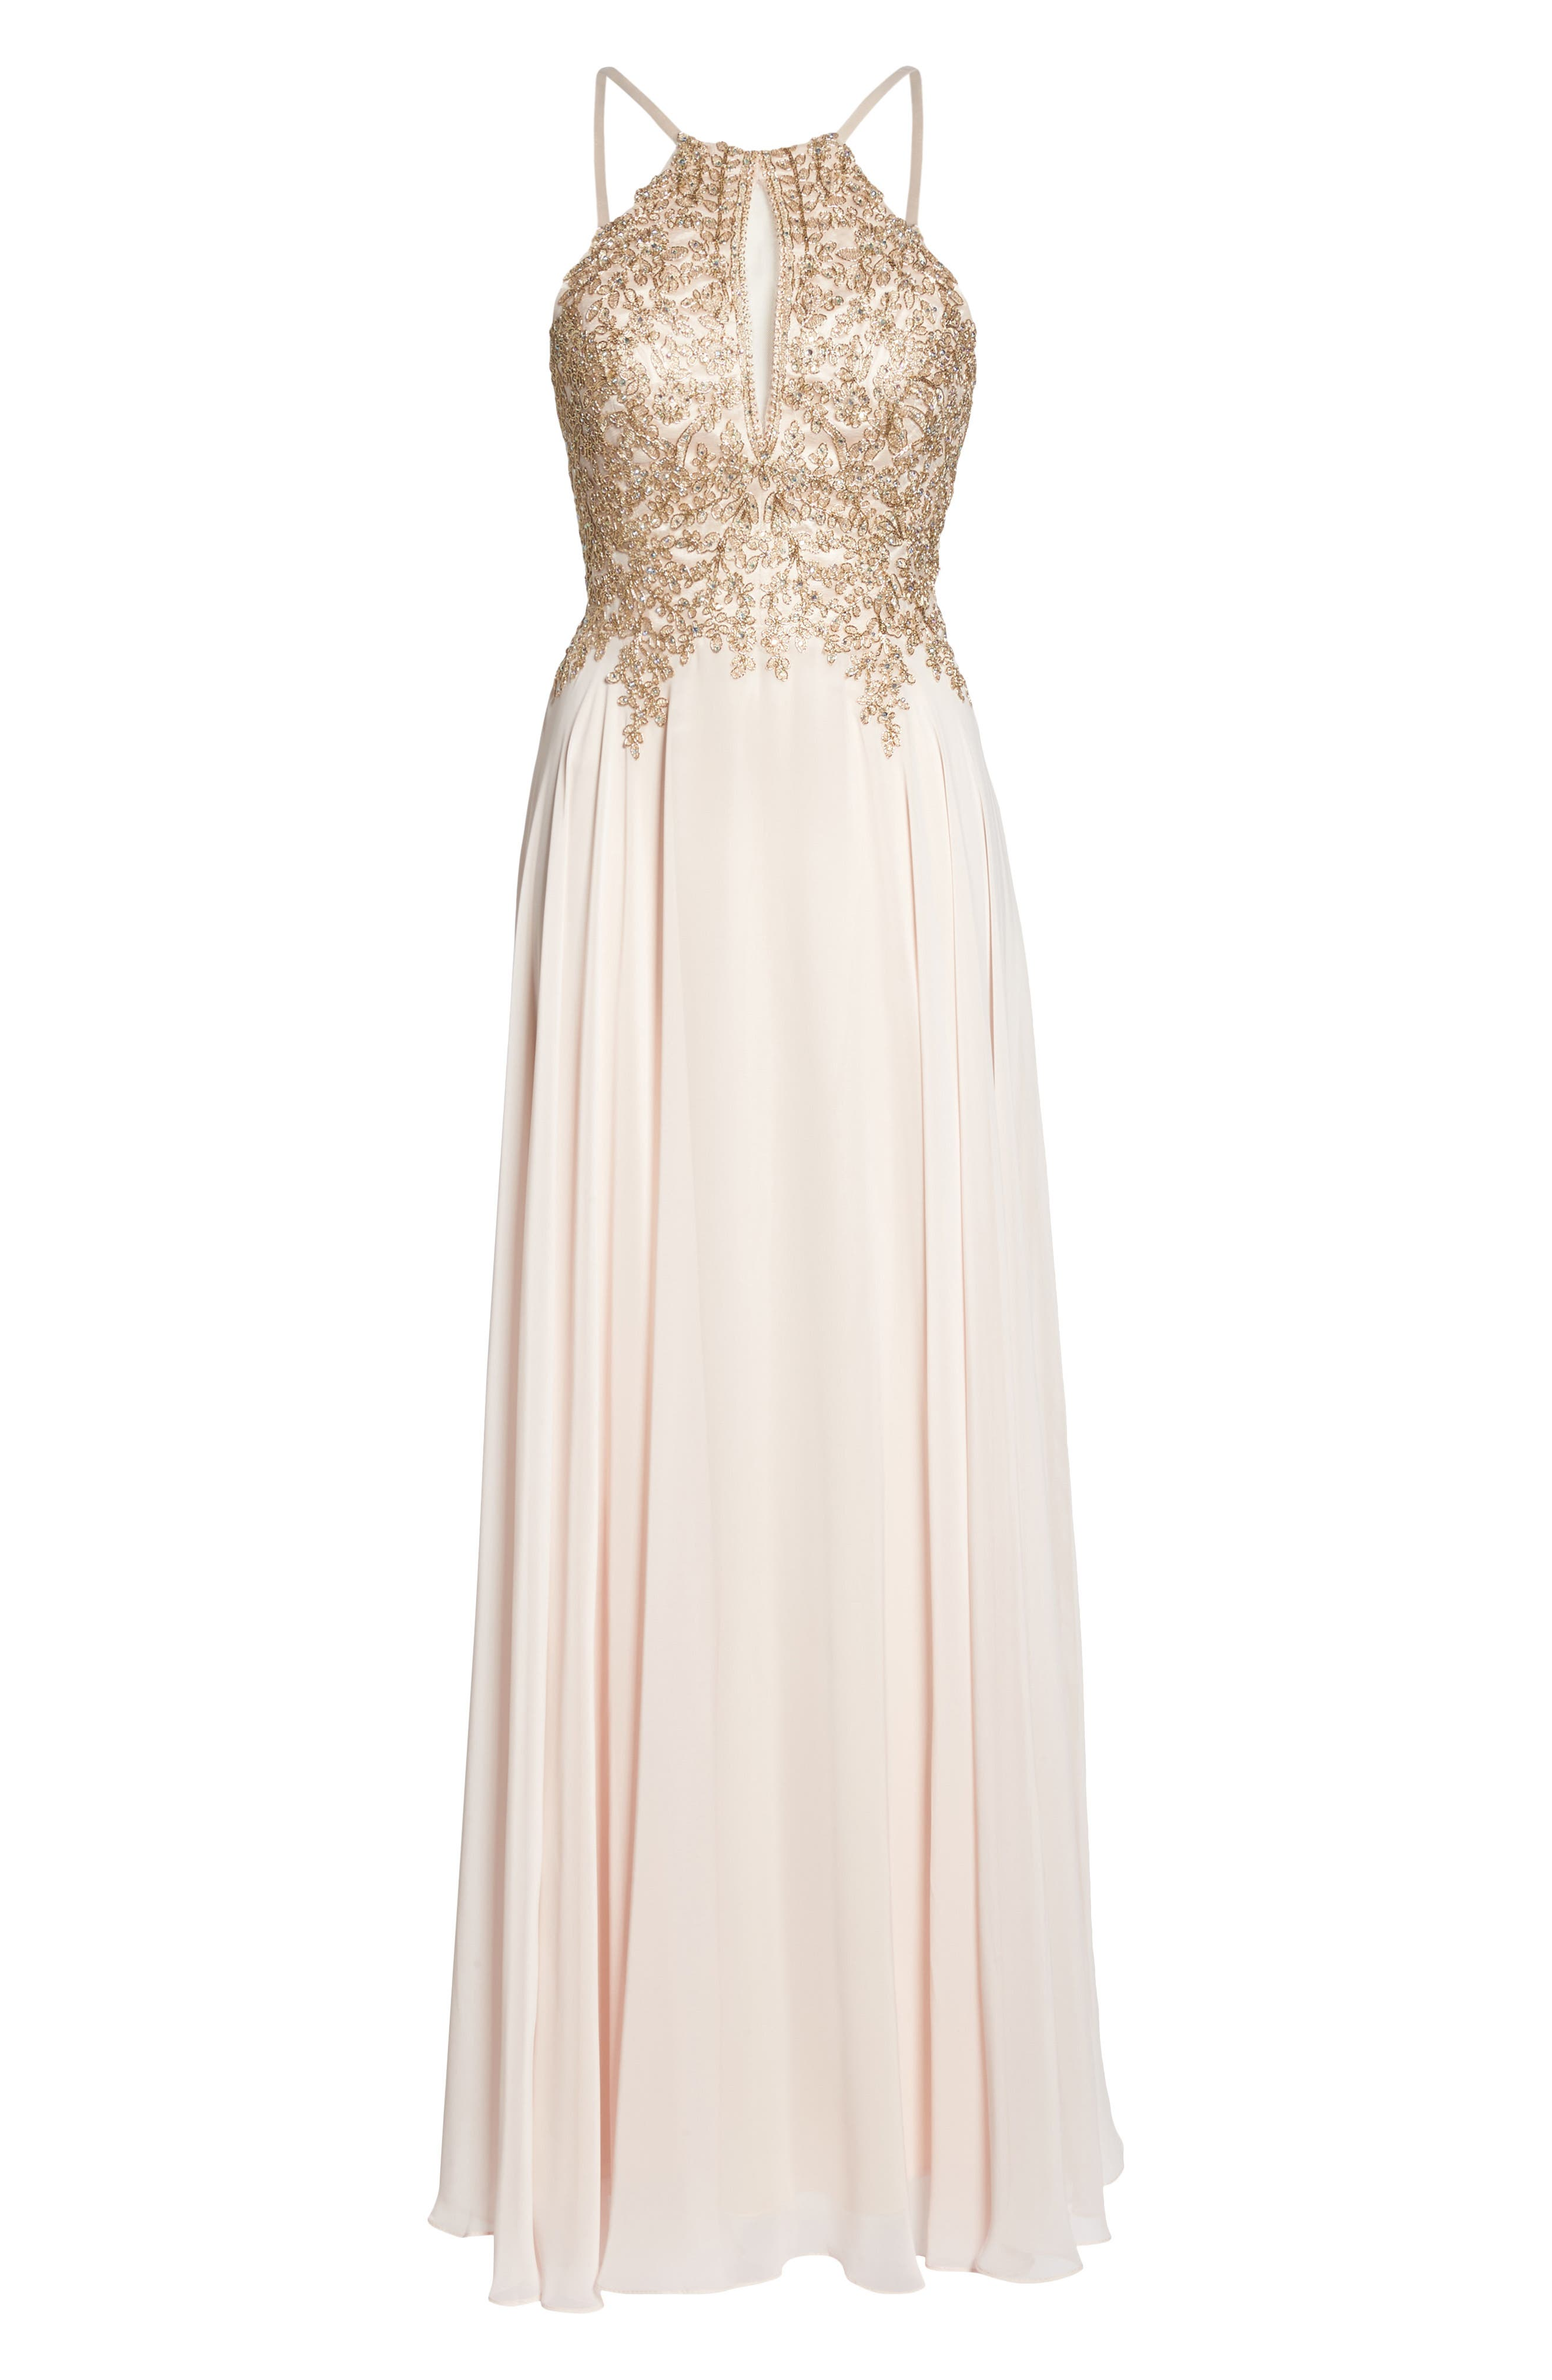 Embroidered Chiffon Halter Dress,                             Alternate thumbnail 6, color,                             BLUSH/ GOLD